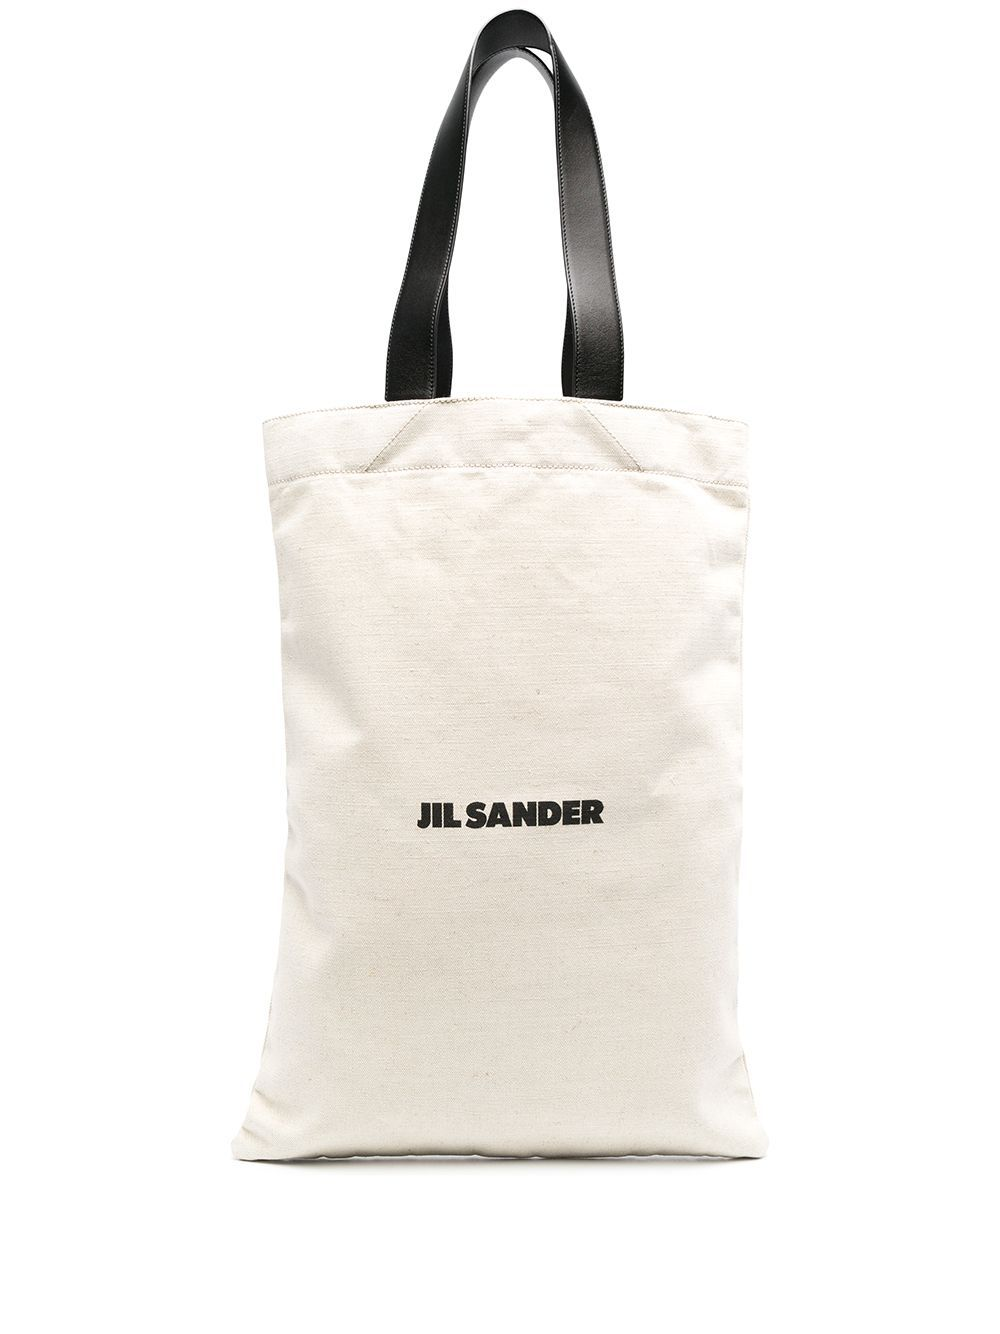 Jil Sander JIL SANDER MEN'S BEIGE FABRIC TRAVEL BAG